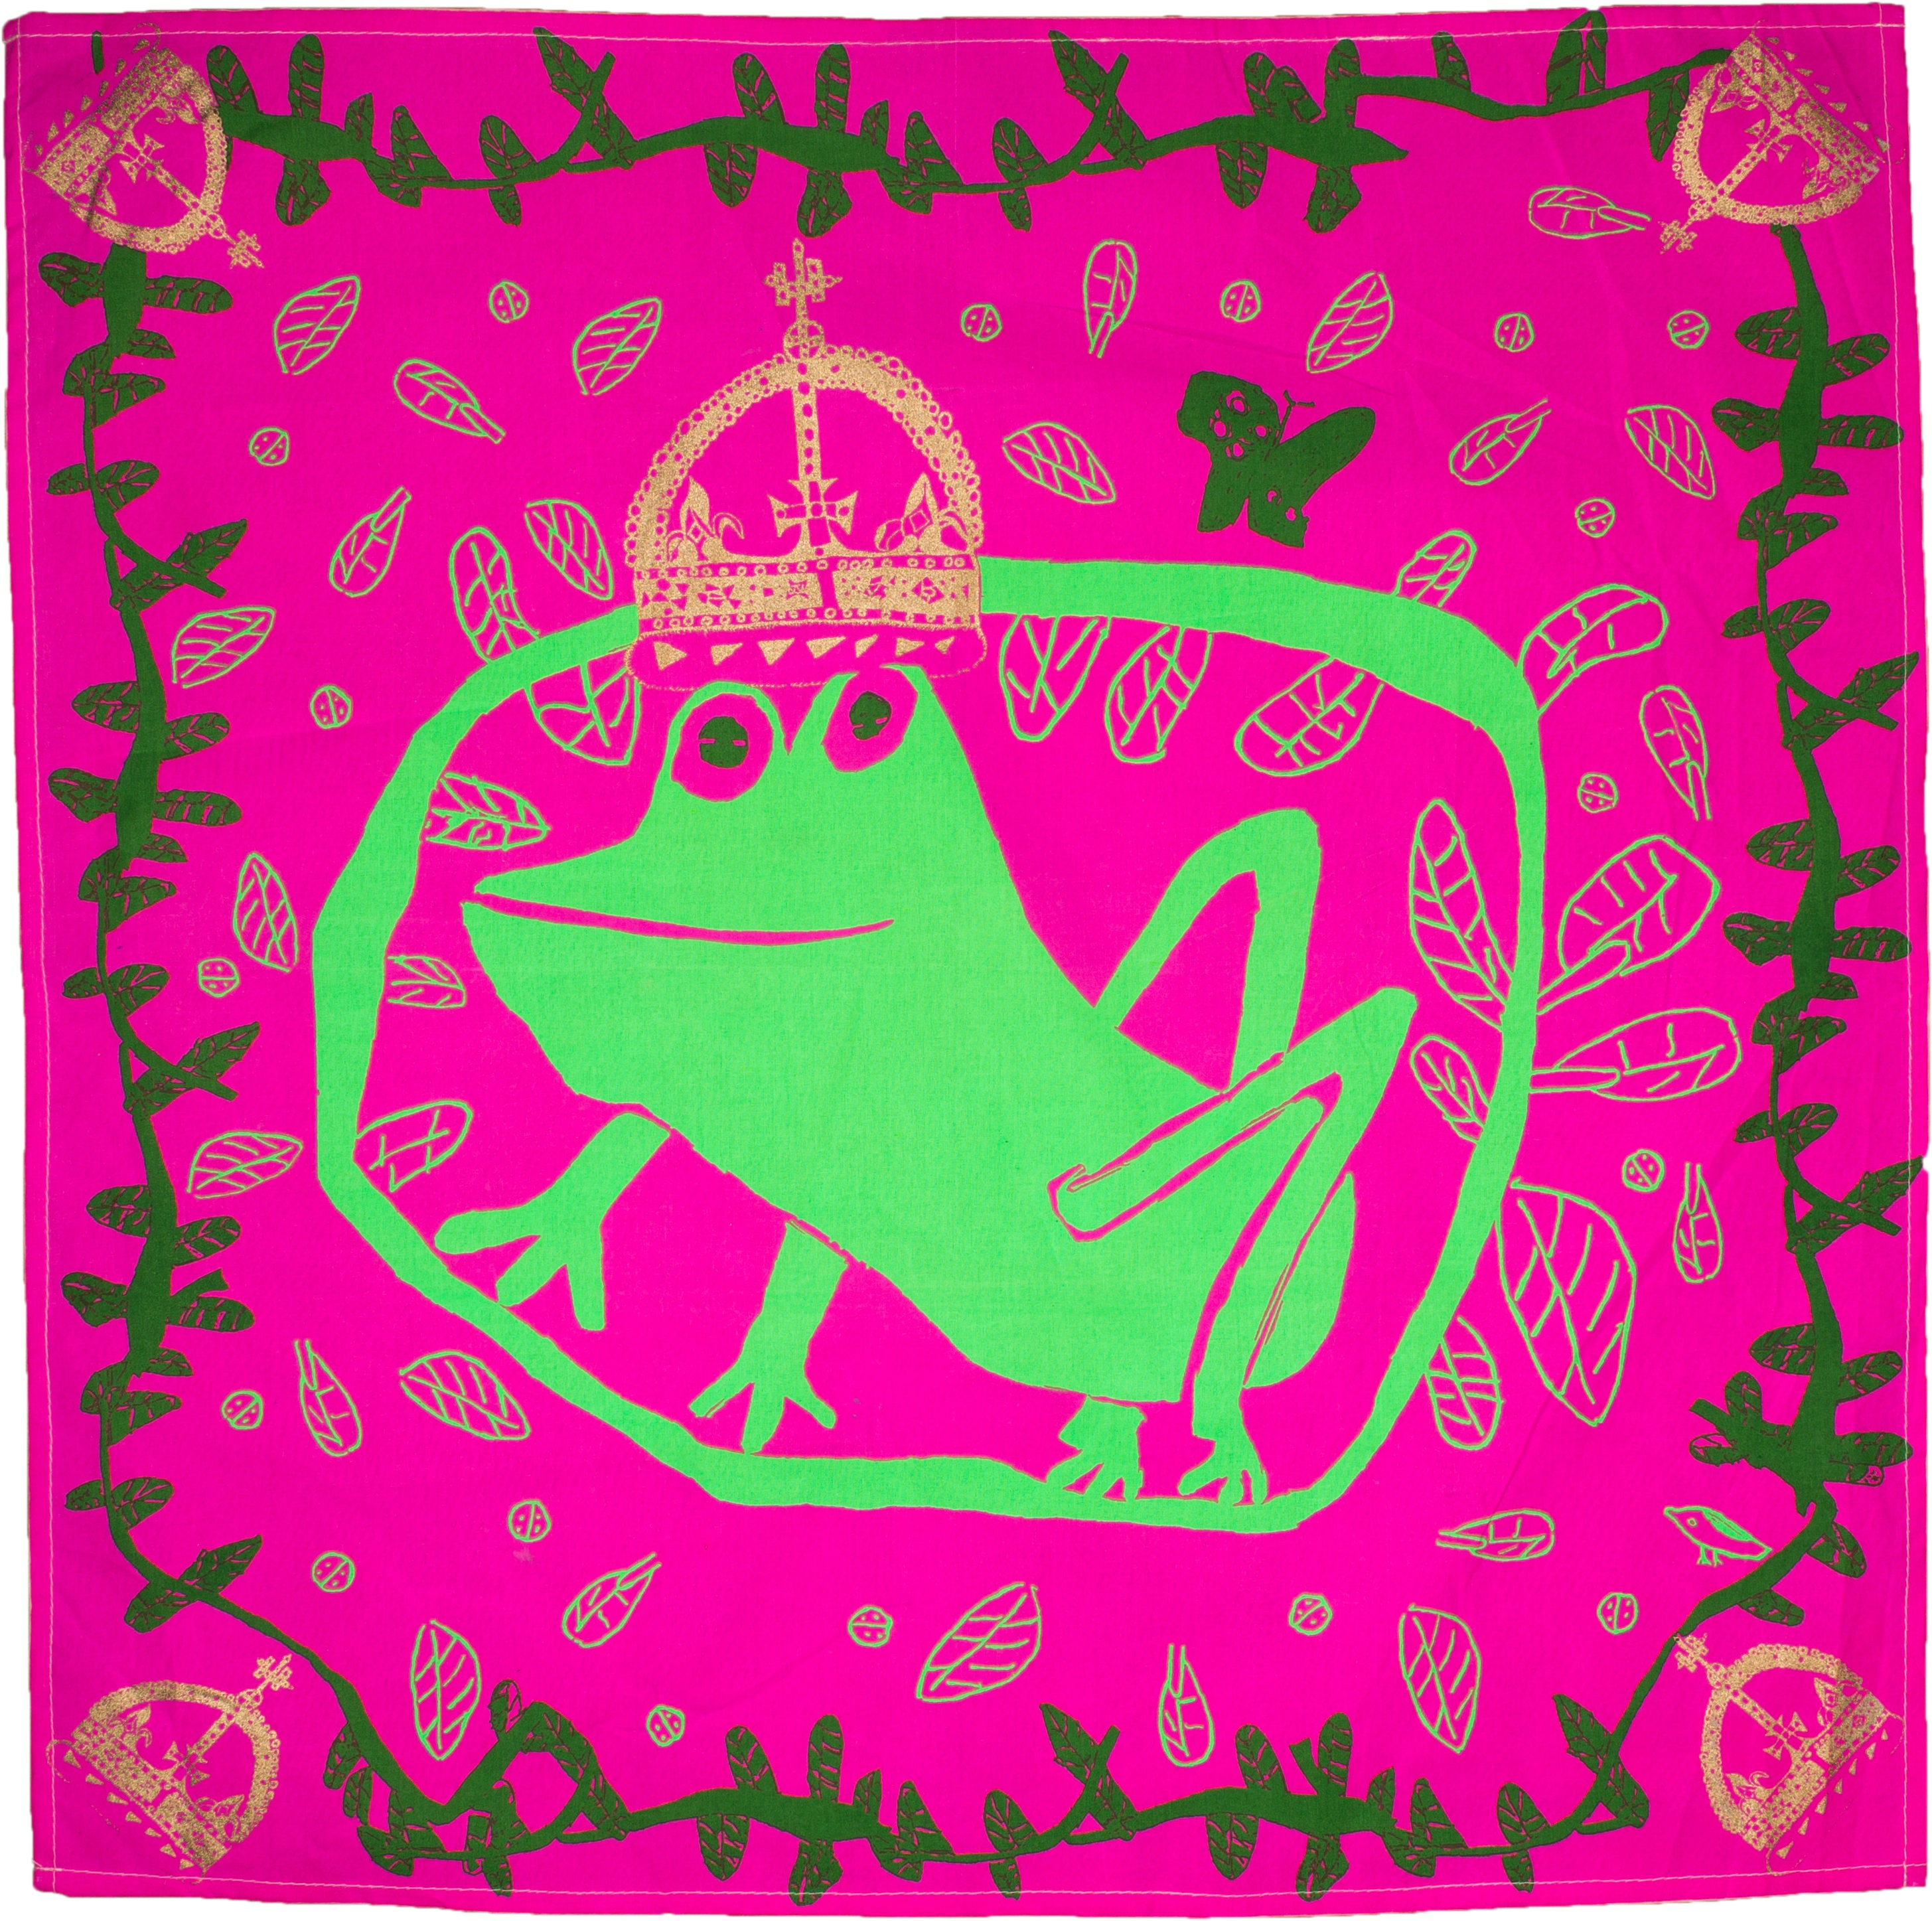 gifts_spring_knot_wrapsfrog_prince